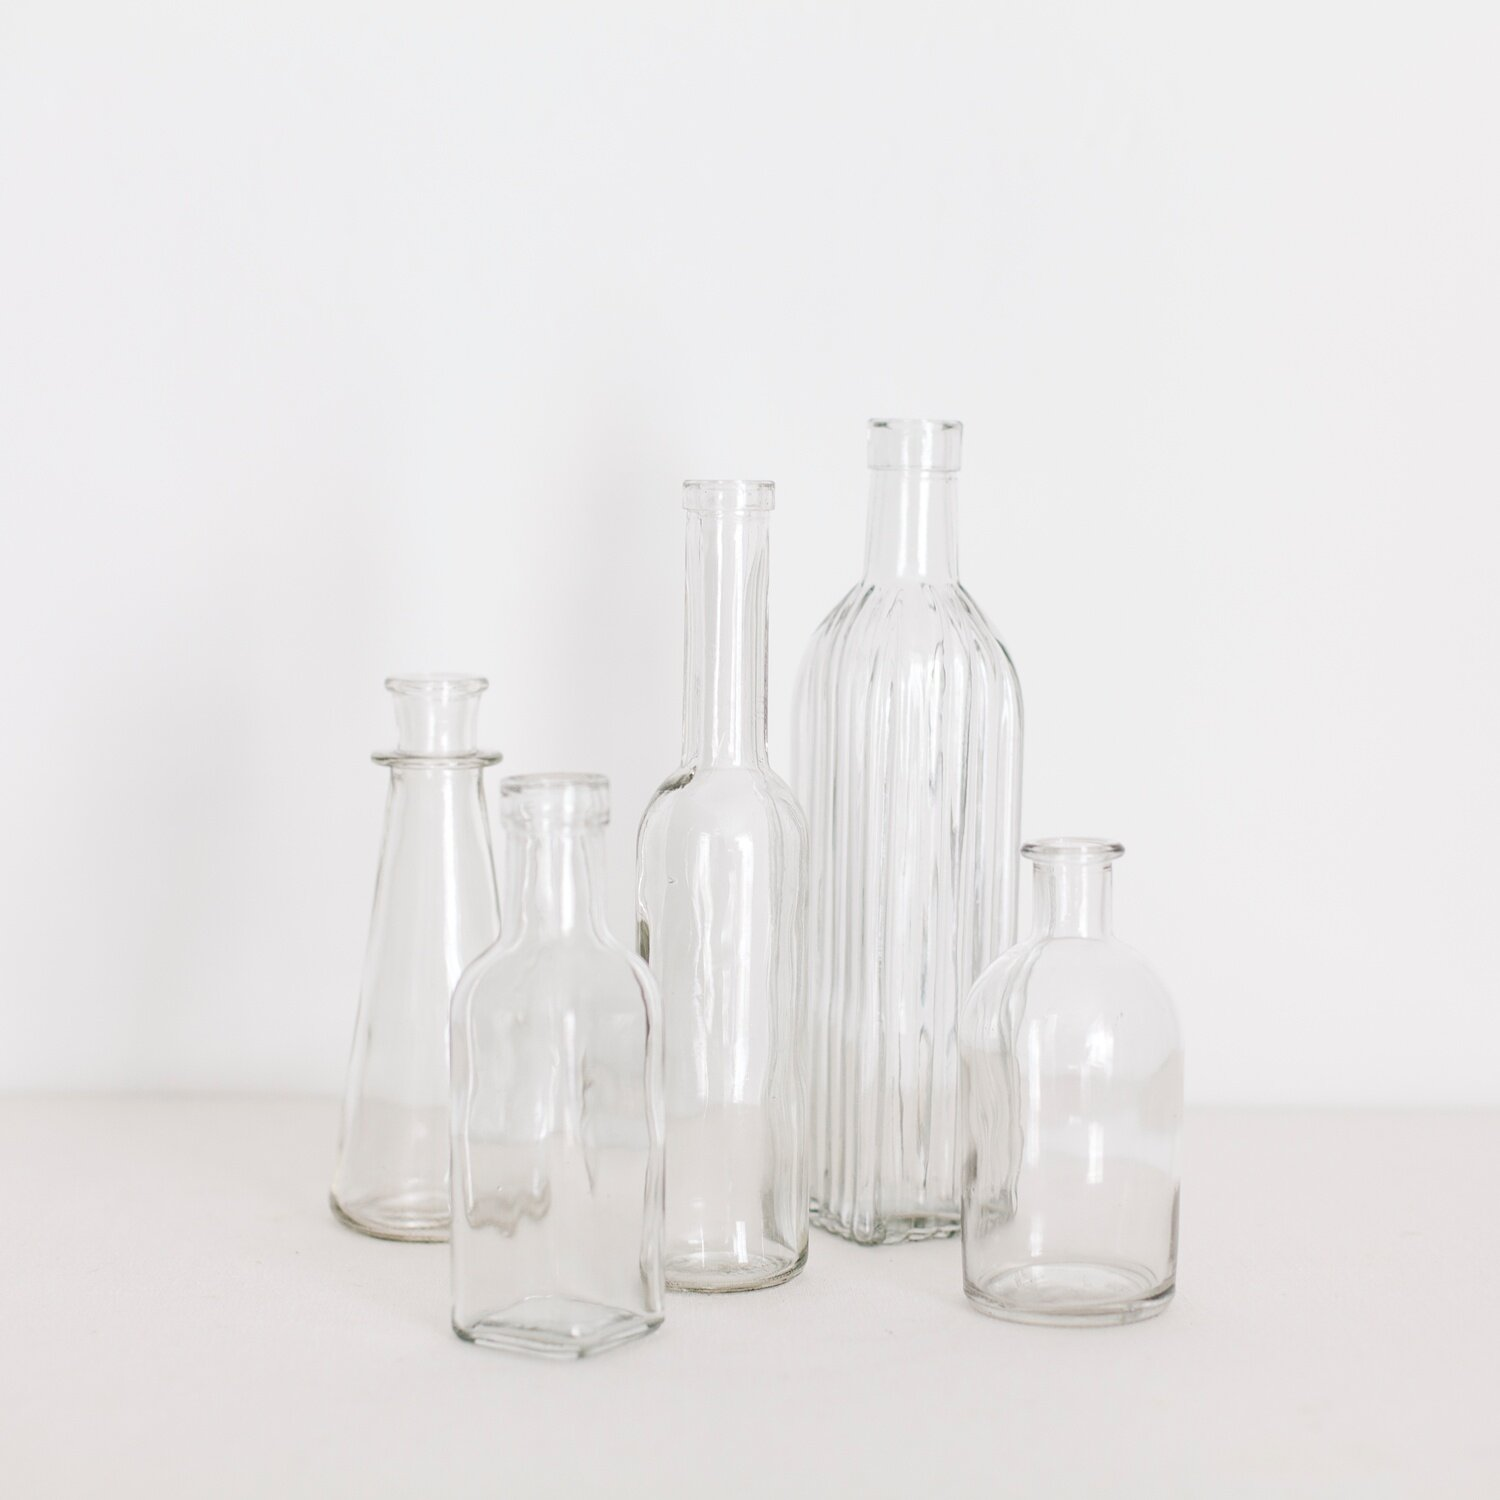 VINTAGE BUD VASE COLLECTION  $ 1.00 / 100 in stock Includes additional styles (not pictured)